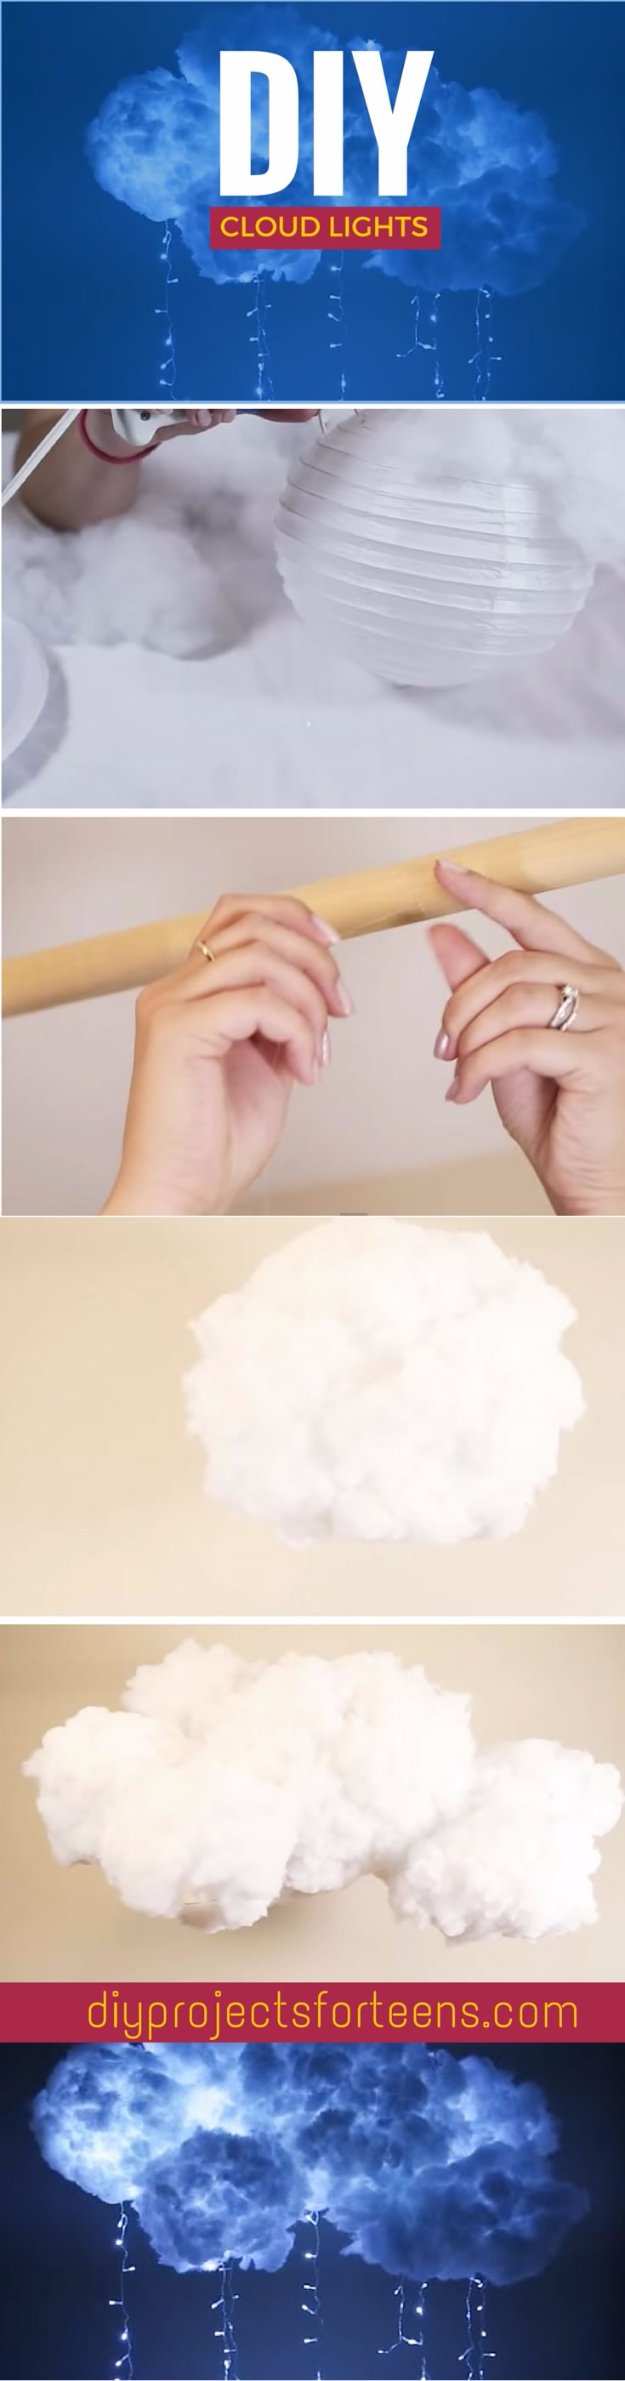 DIY Projects for Teenagers - DIY Cloud Light - Cool Teen Crafts Ideas for Bedroom Decor, Gifts, Clothes and Fun Room Organization. Summer and Awesome School Stuff